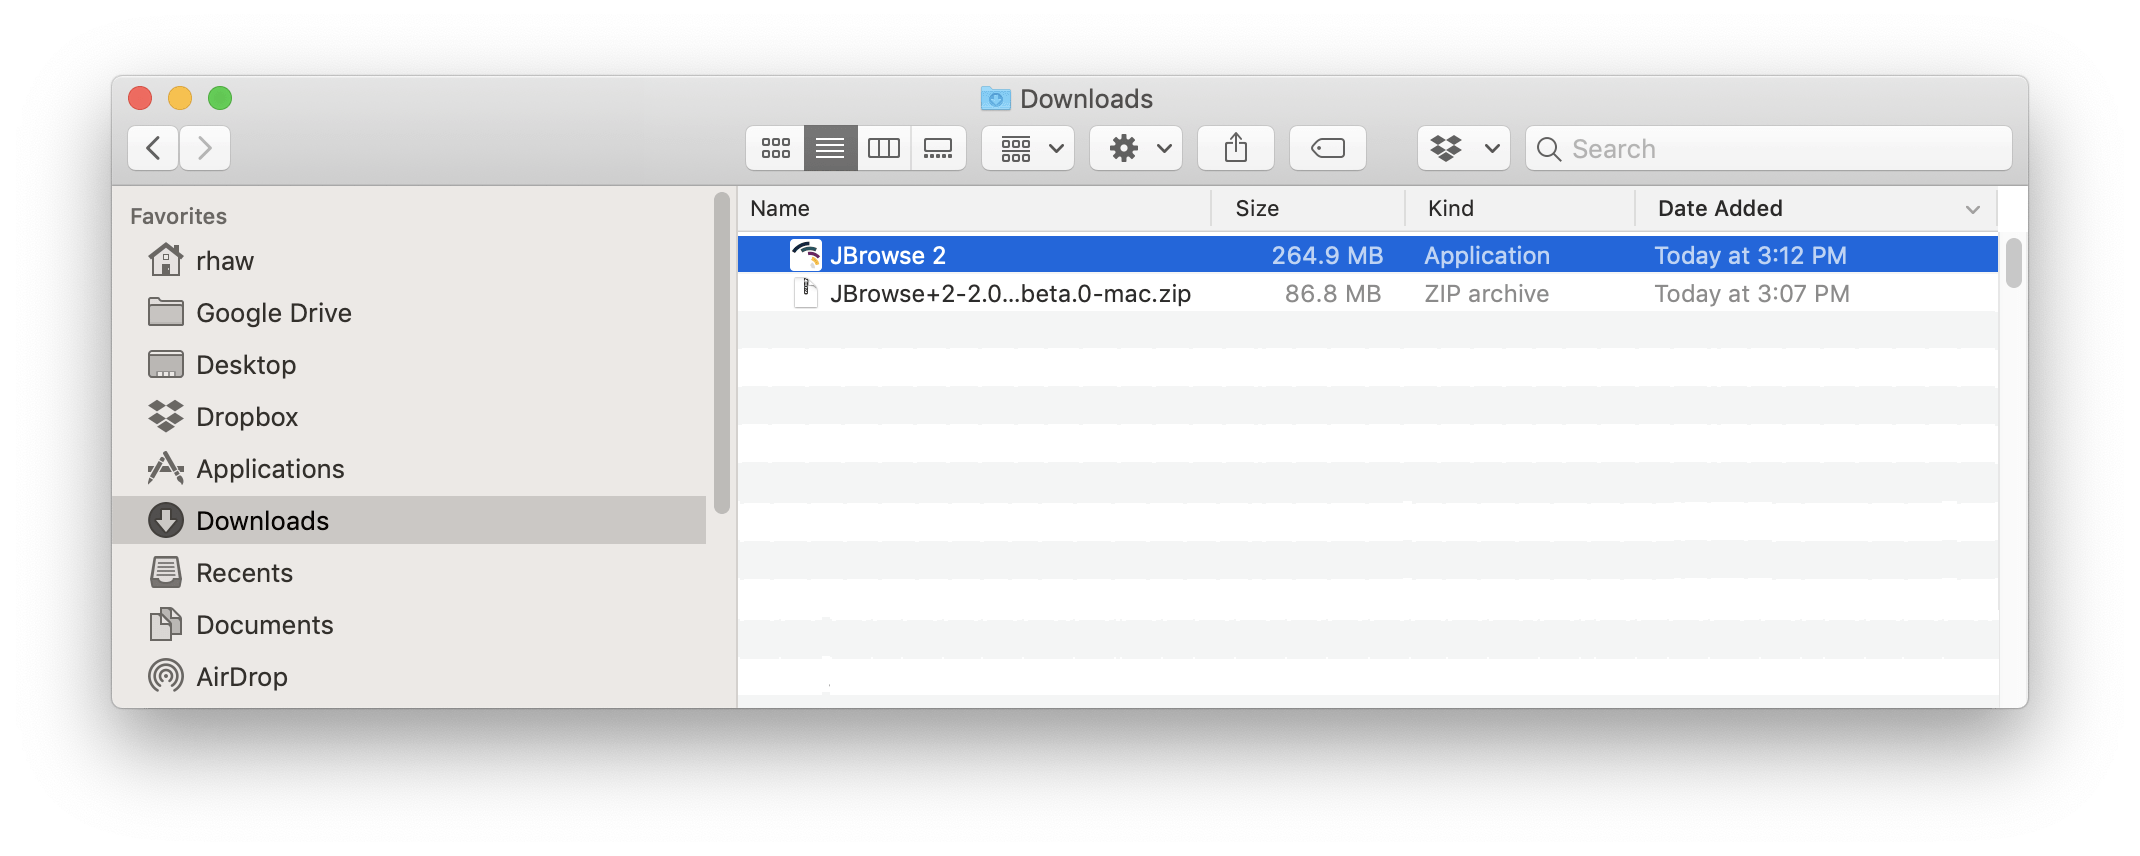 Screenshot of the Finder window showing the downloaded zip file and unzipped contents